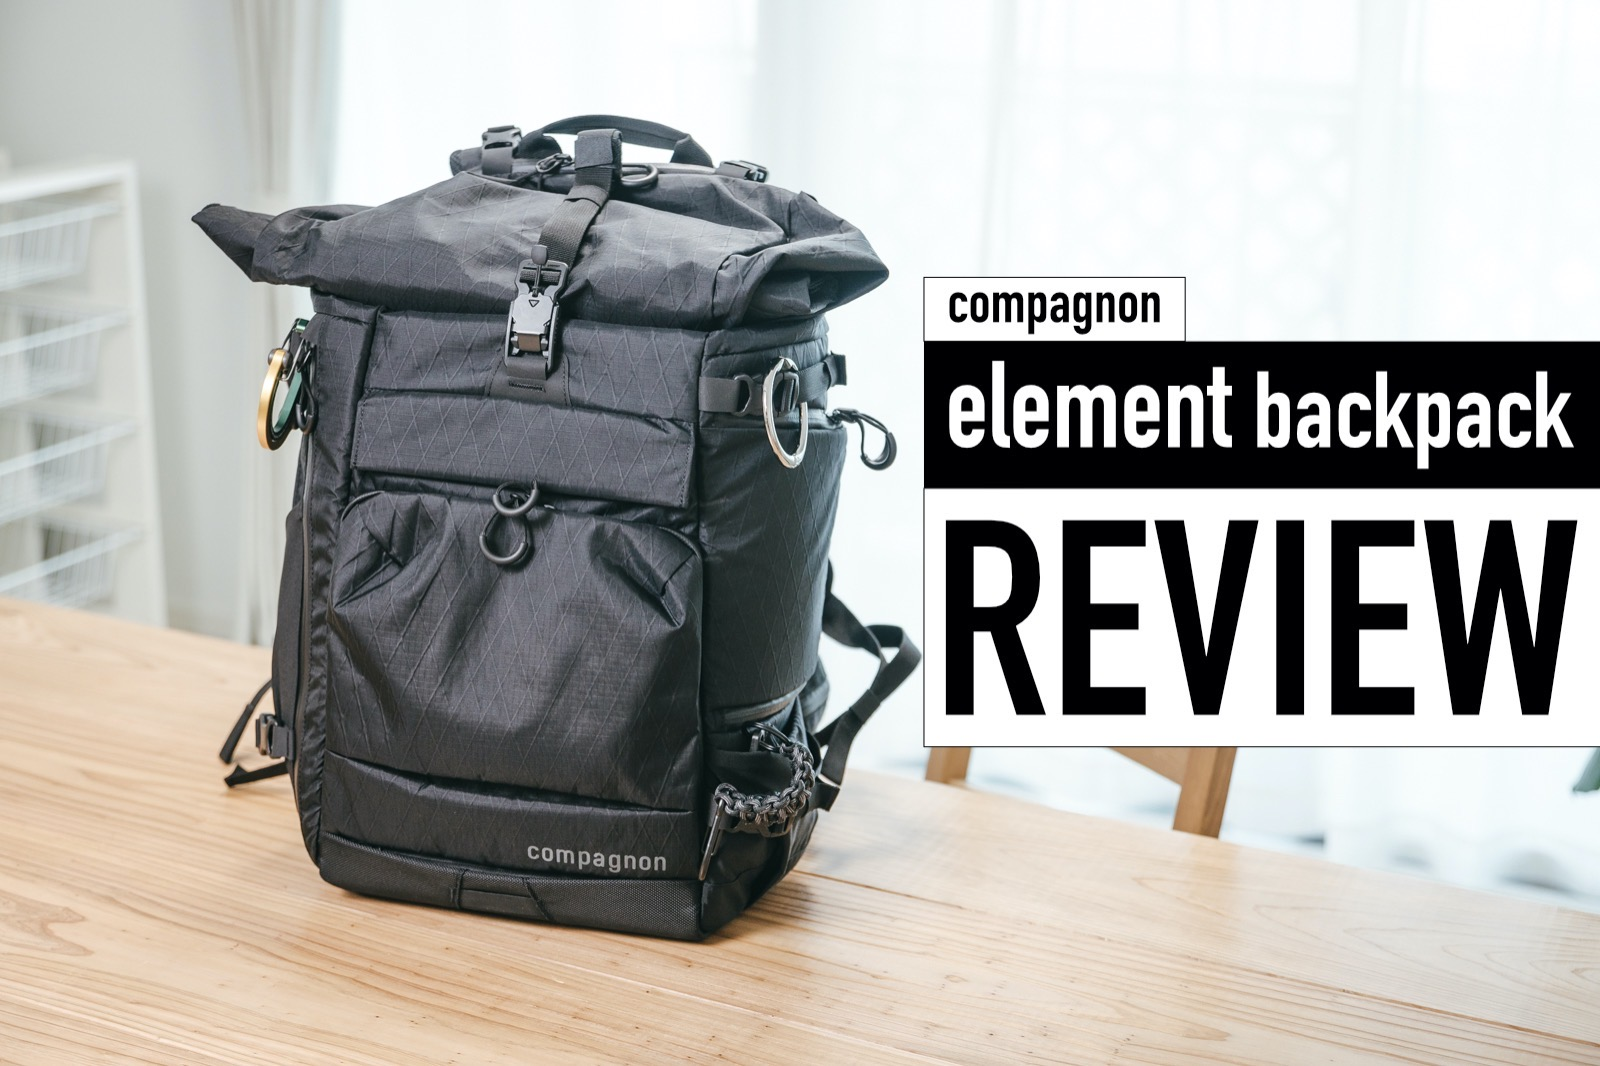 Compagnon element backpack review